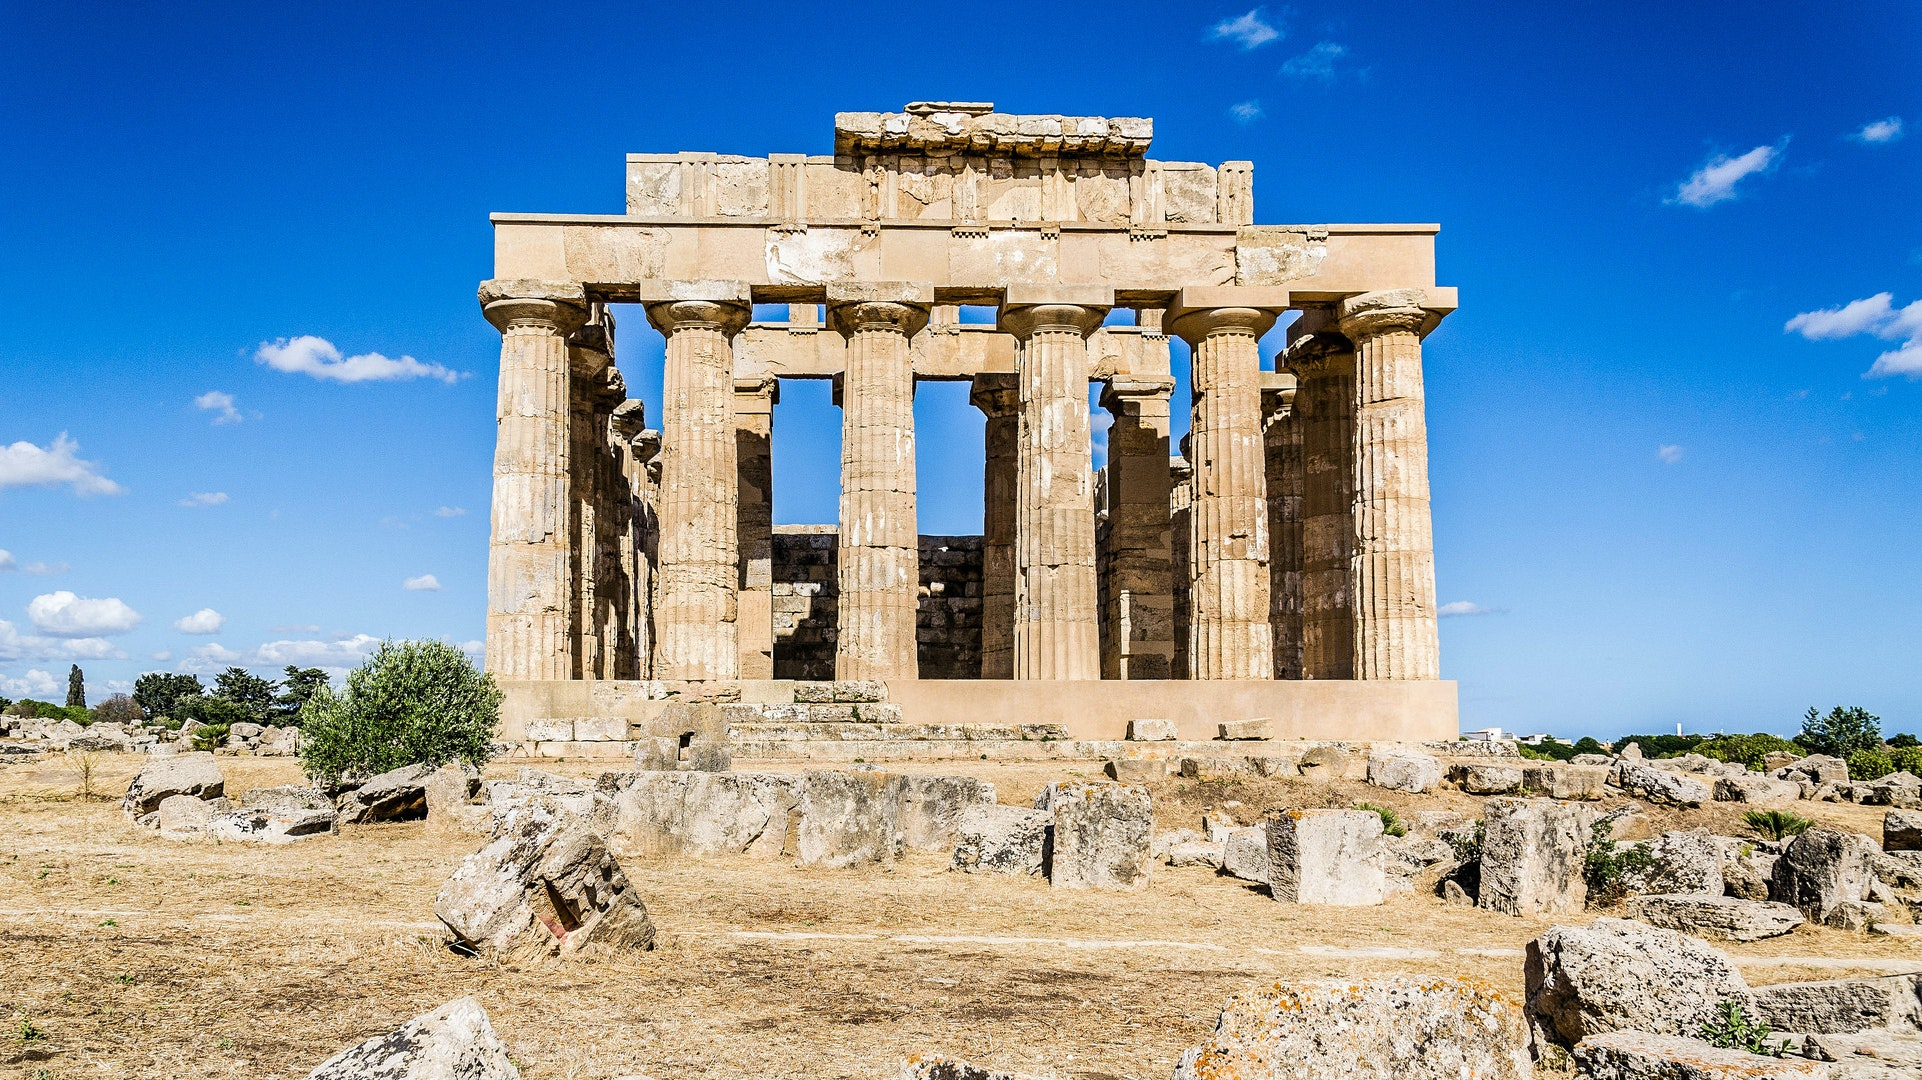 Day 5 of the Chef Bike tour will bring riders to the Temple of Hera in the ancient town Selinunte.